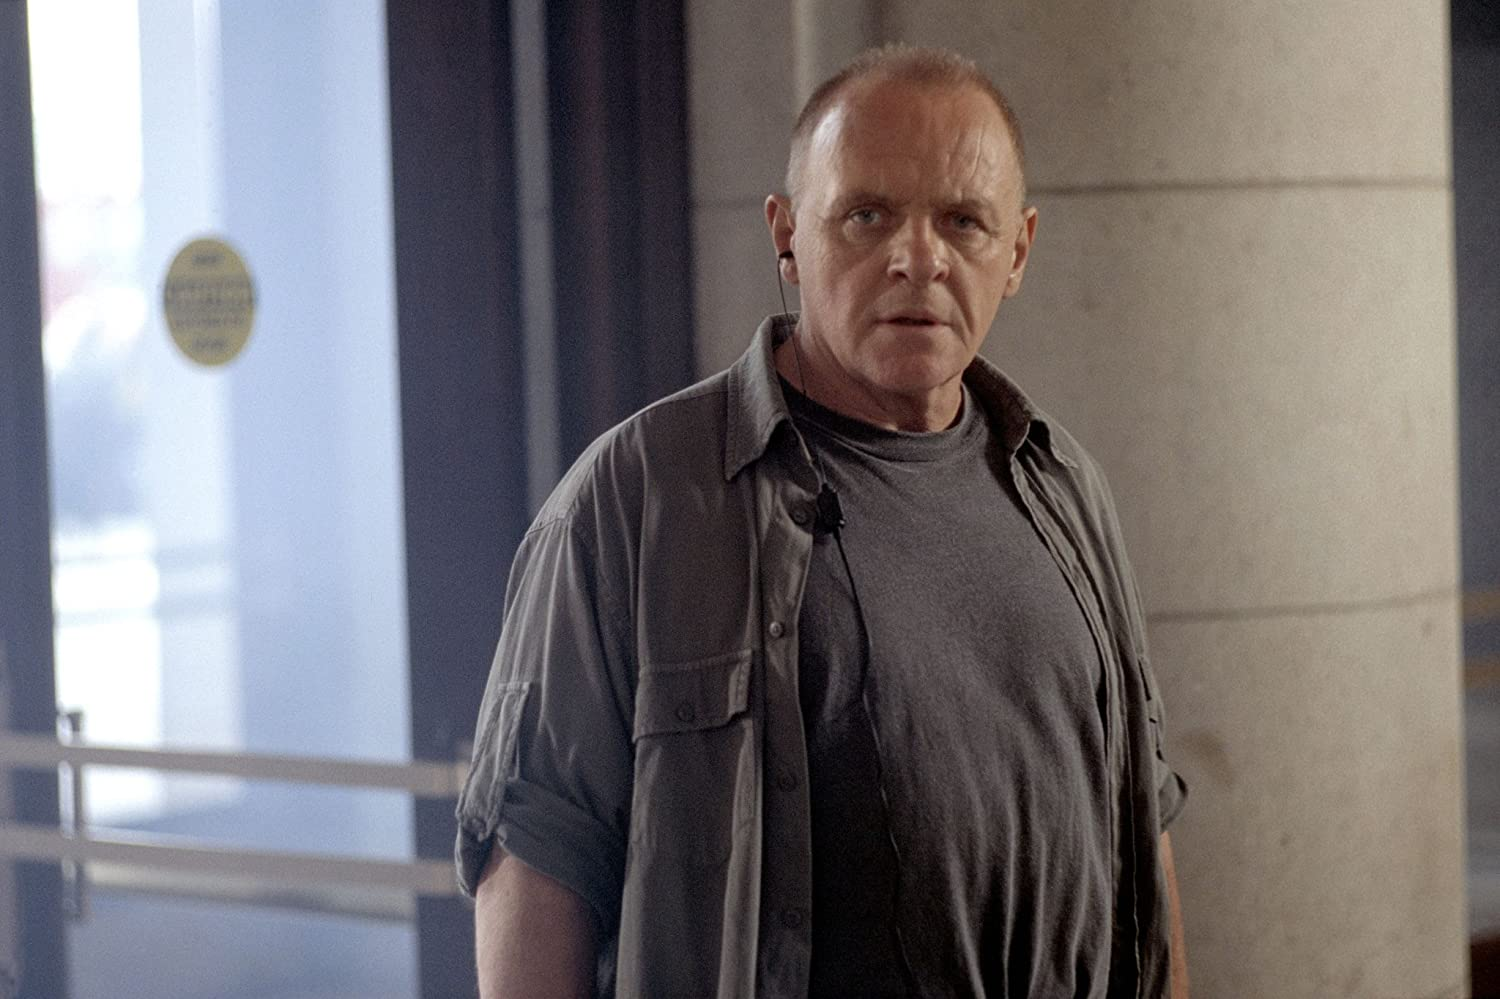 Anthony Hopkins in Hannibal (2001)